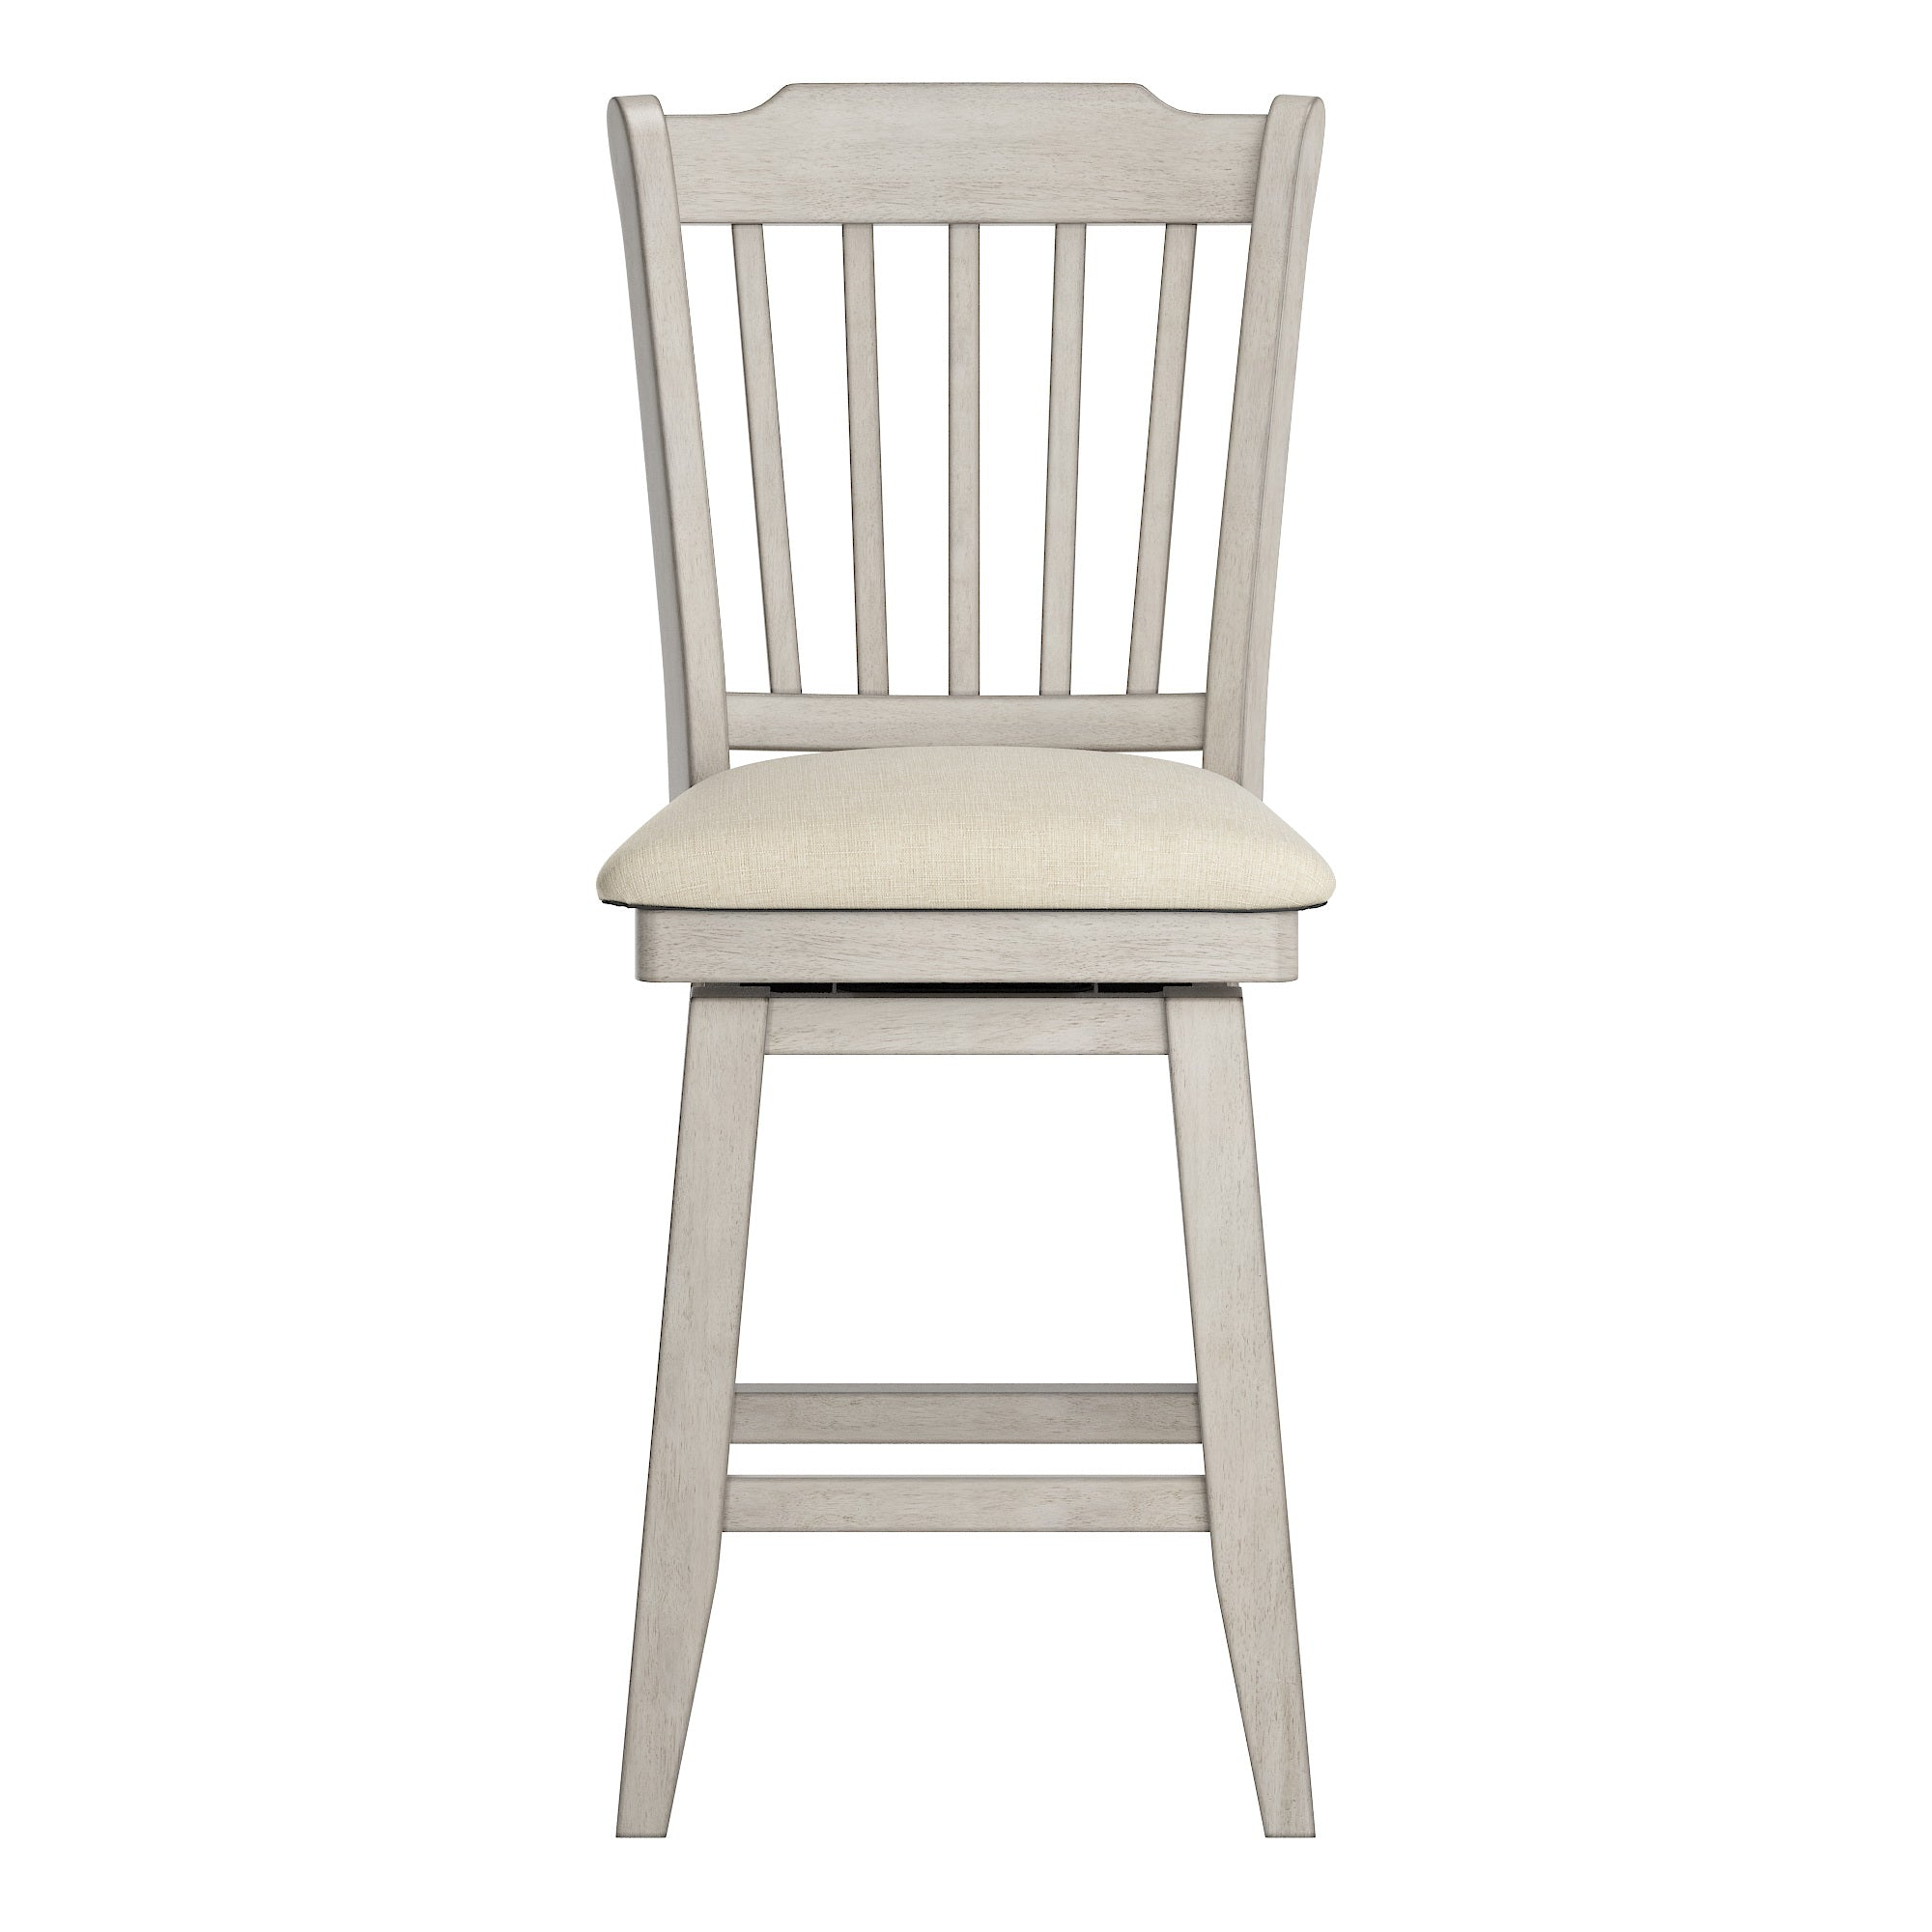 Slat Back Counter Height Wood Swivel Chair - Antique White Finish